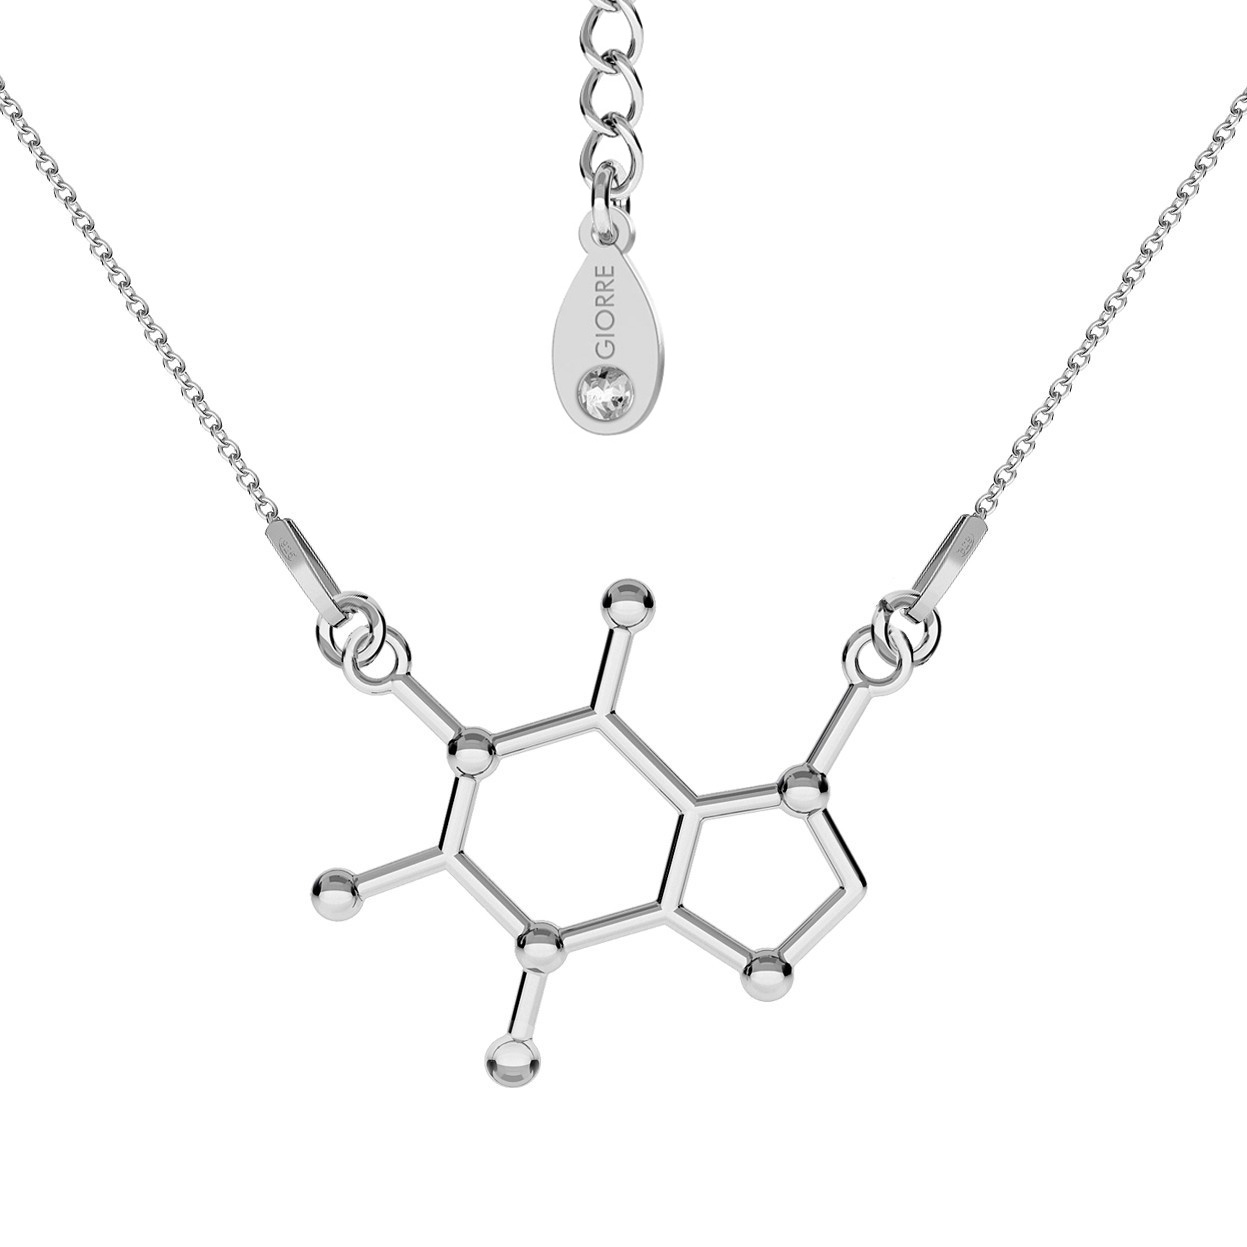 CAFFEINE NECKLACE CHEMICAL FORMULA STERLING SILVER